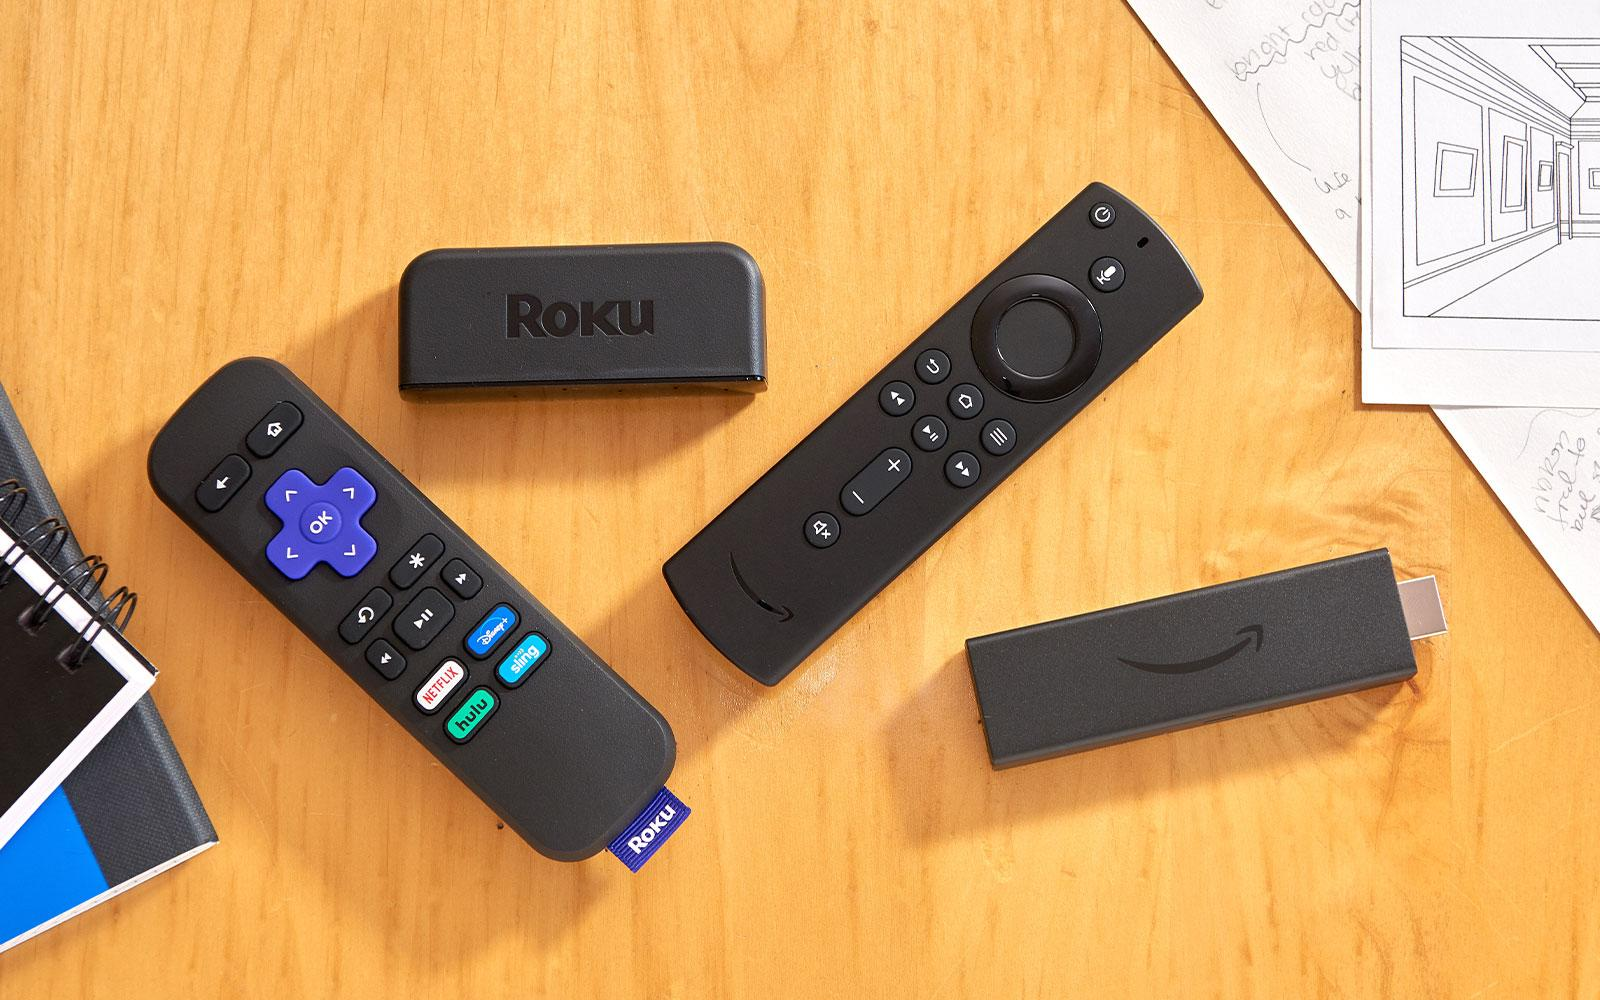 The best budget smart TVs and streaming devices for students | Engadget